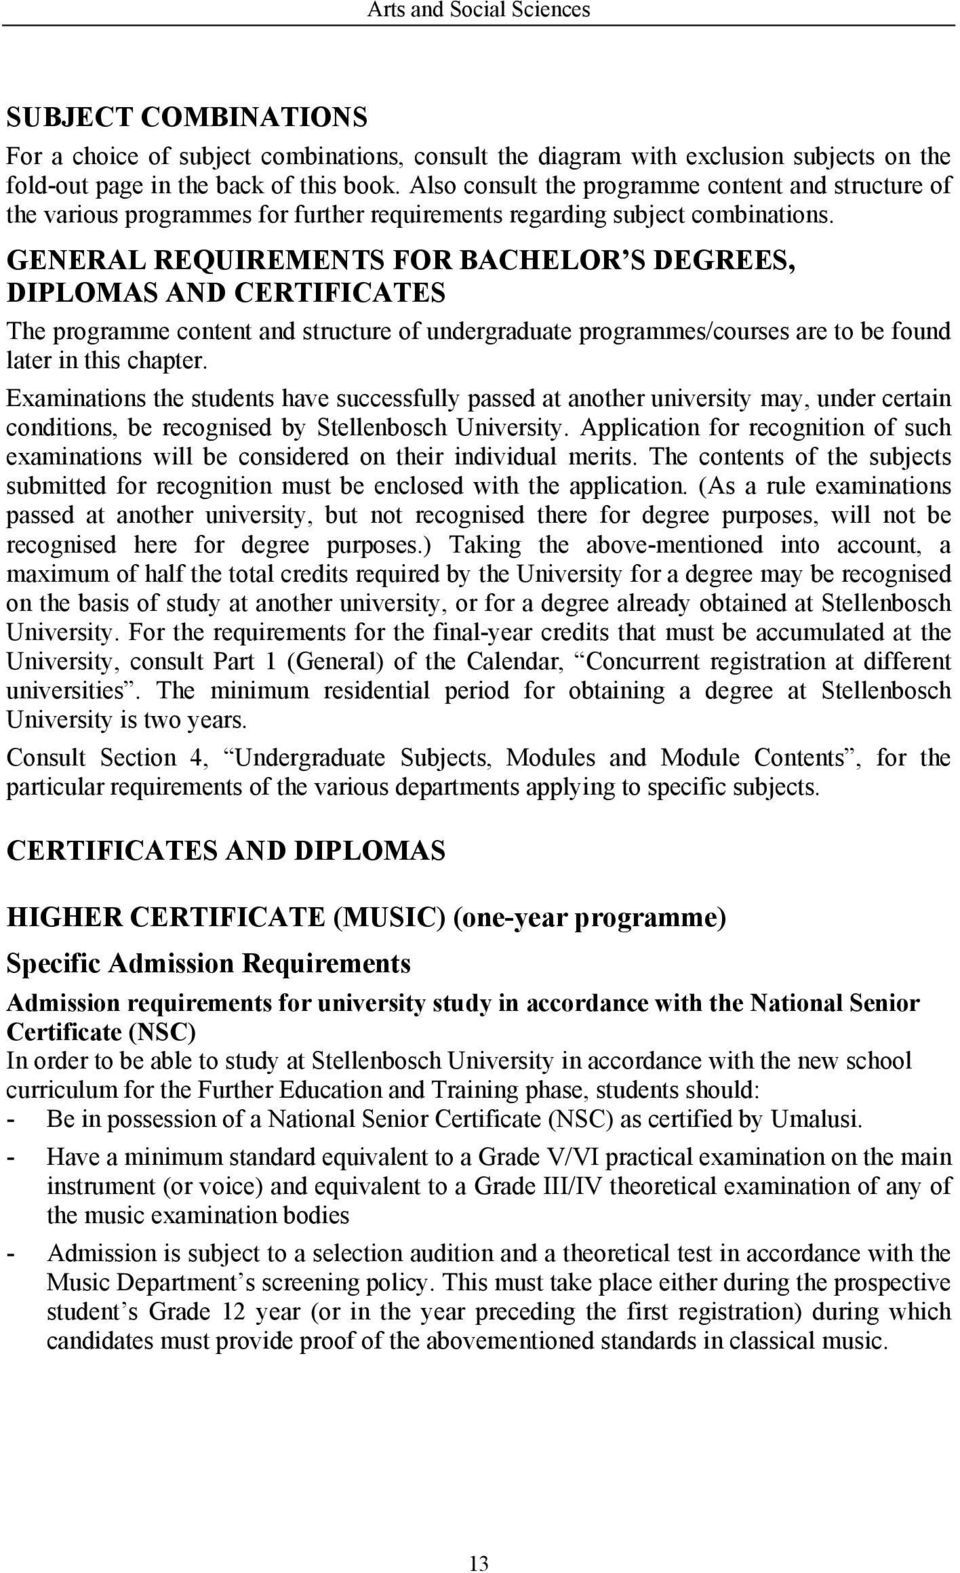 GENERAL REQUIREMENTS FOR BACHELOR S DEGREES, DIPLOMAS AND CERTIFICATES The programme content and structure of undergraduate programmes/courses are to be found later in this chapter.